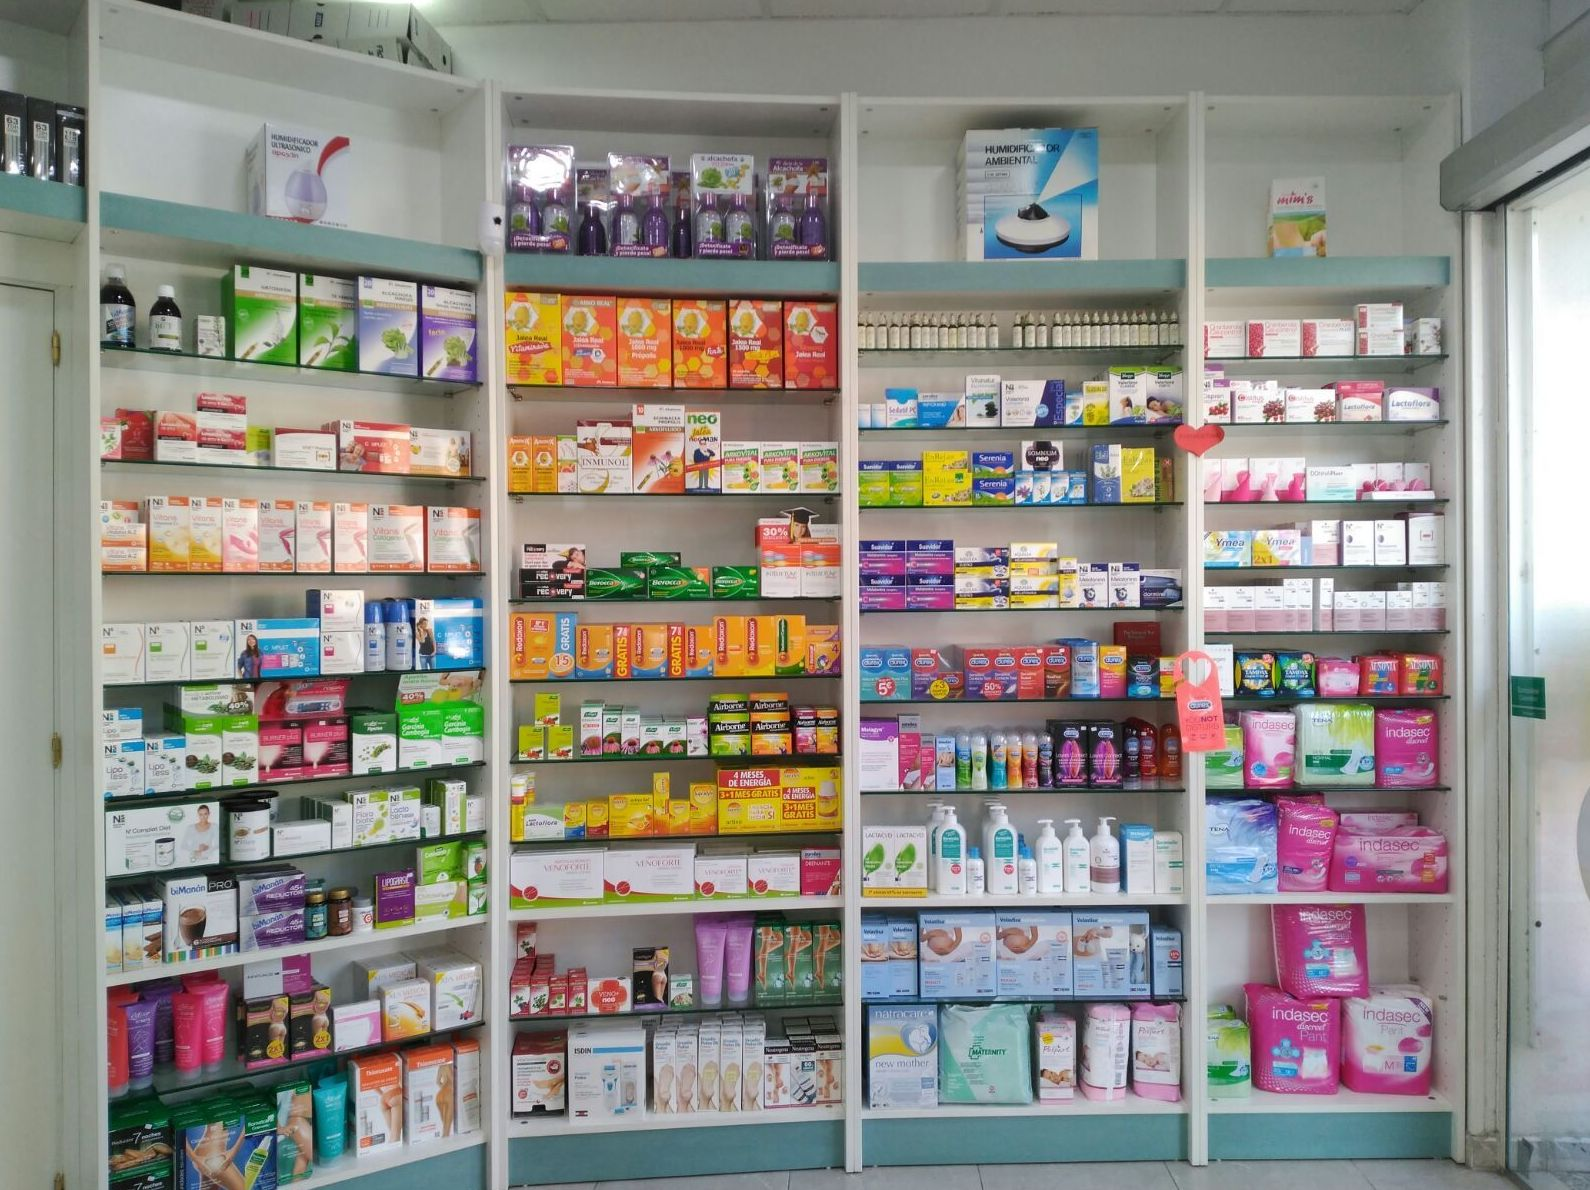 Farmacia Velasco Ramirez en Madrid